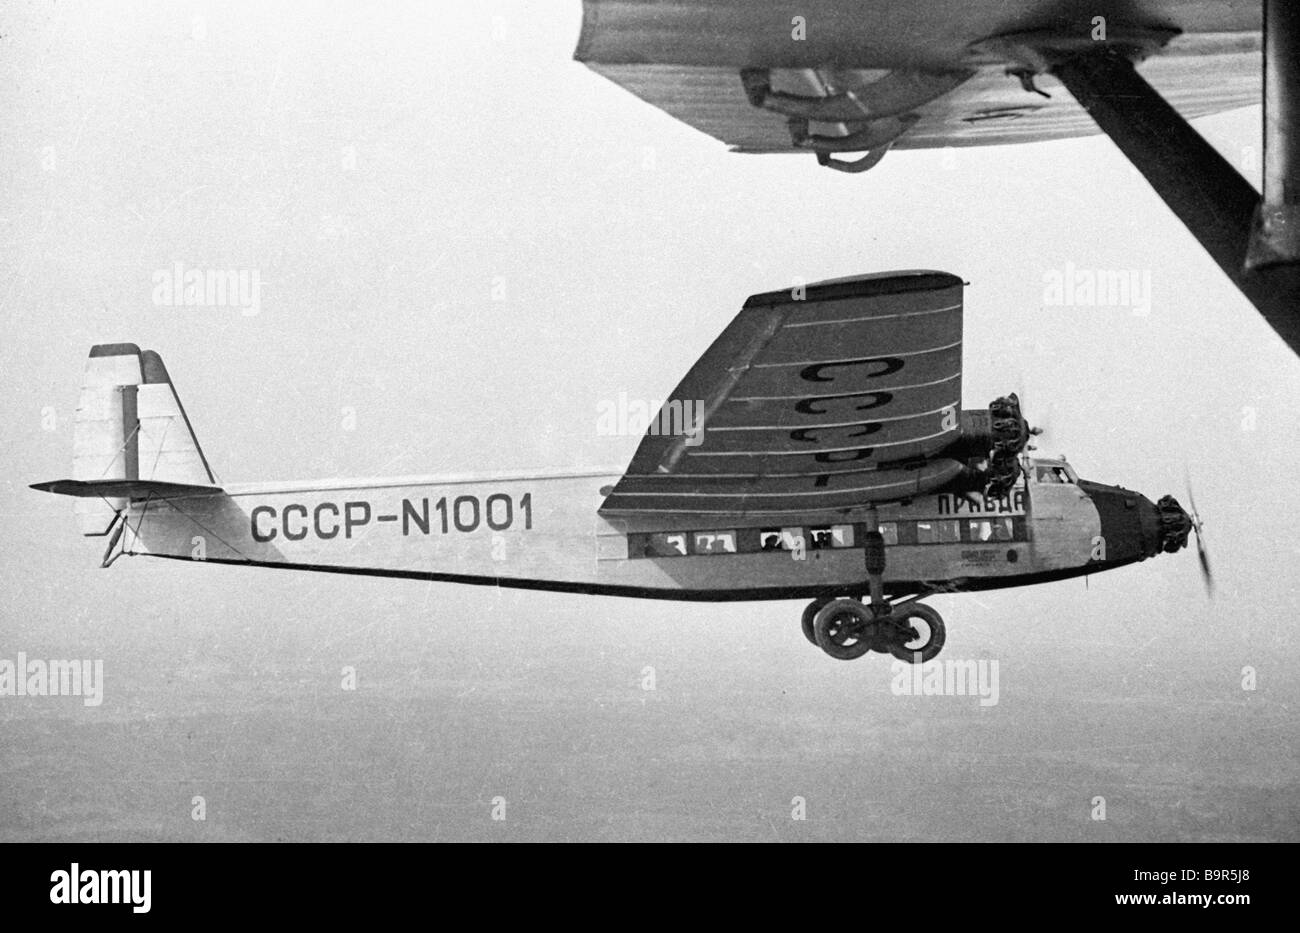 ANT 14 plane on the Moscow Leningrad Moscow flight - Stock Image